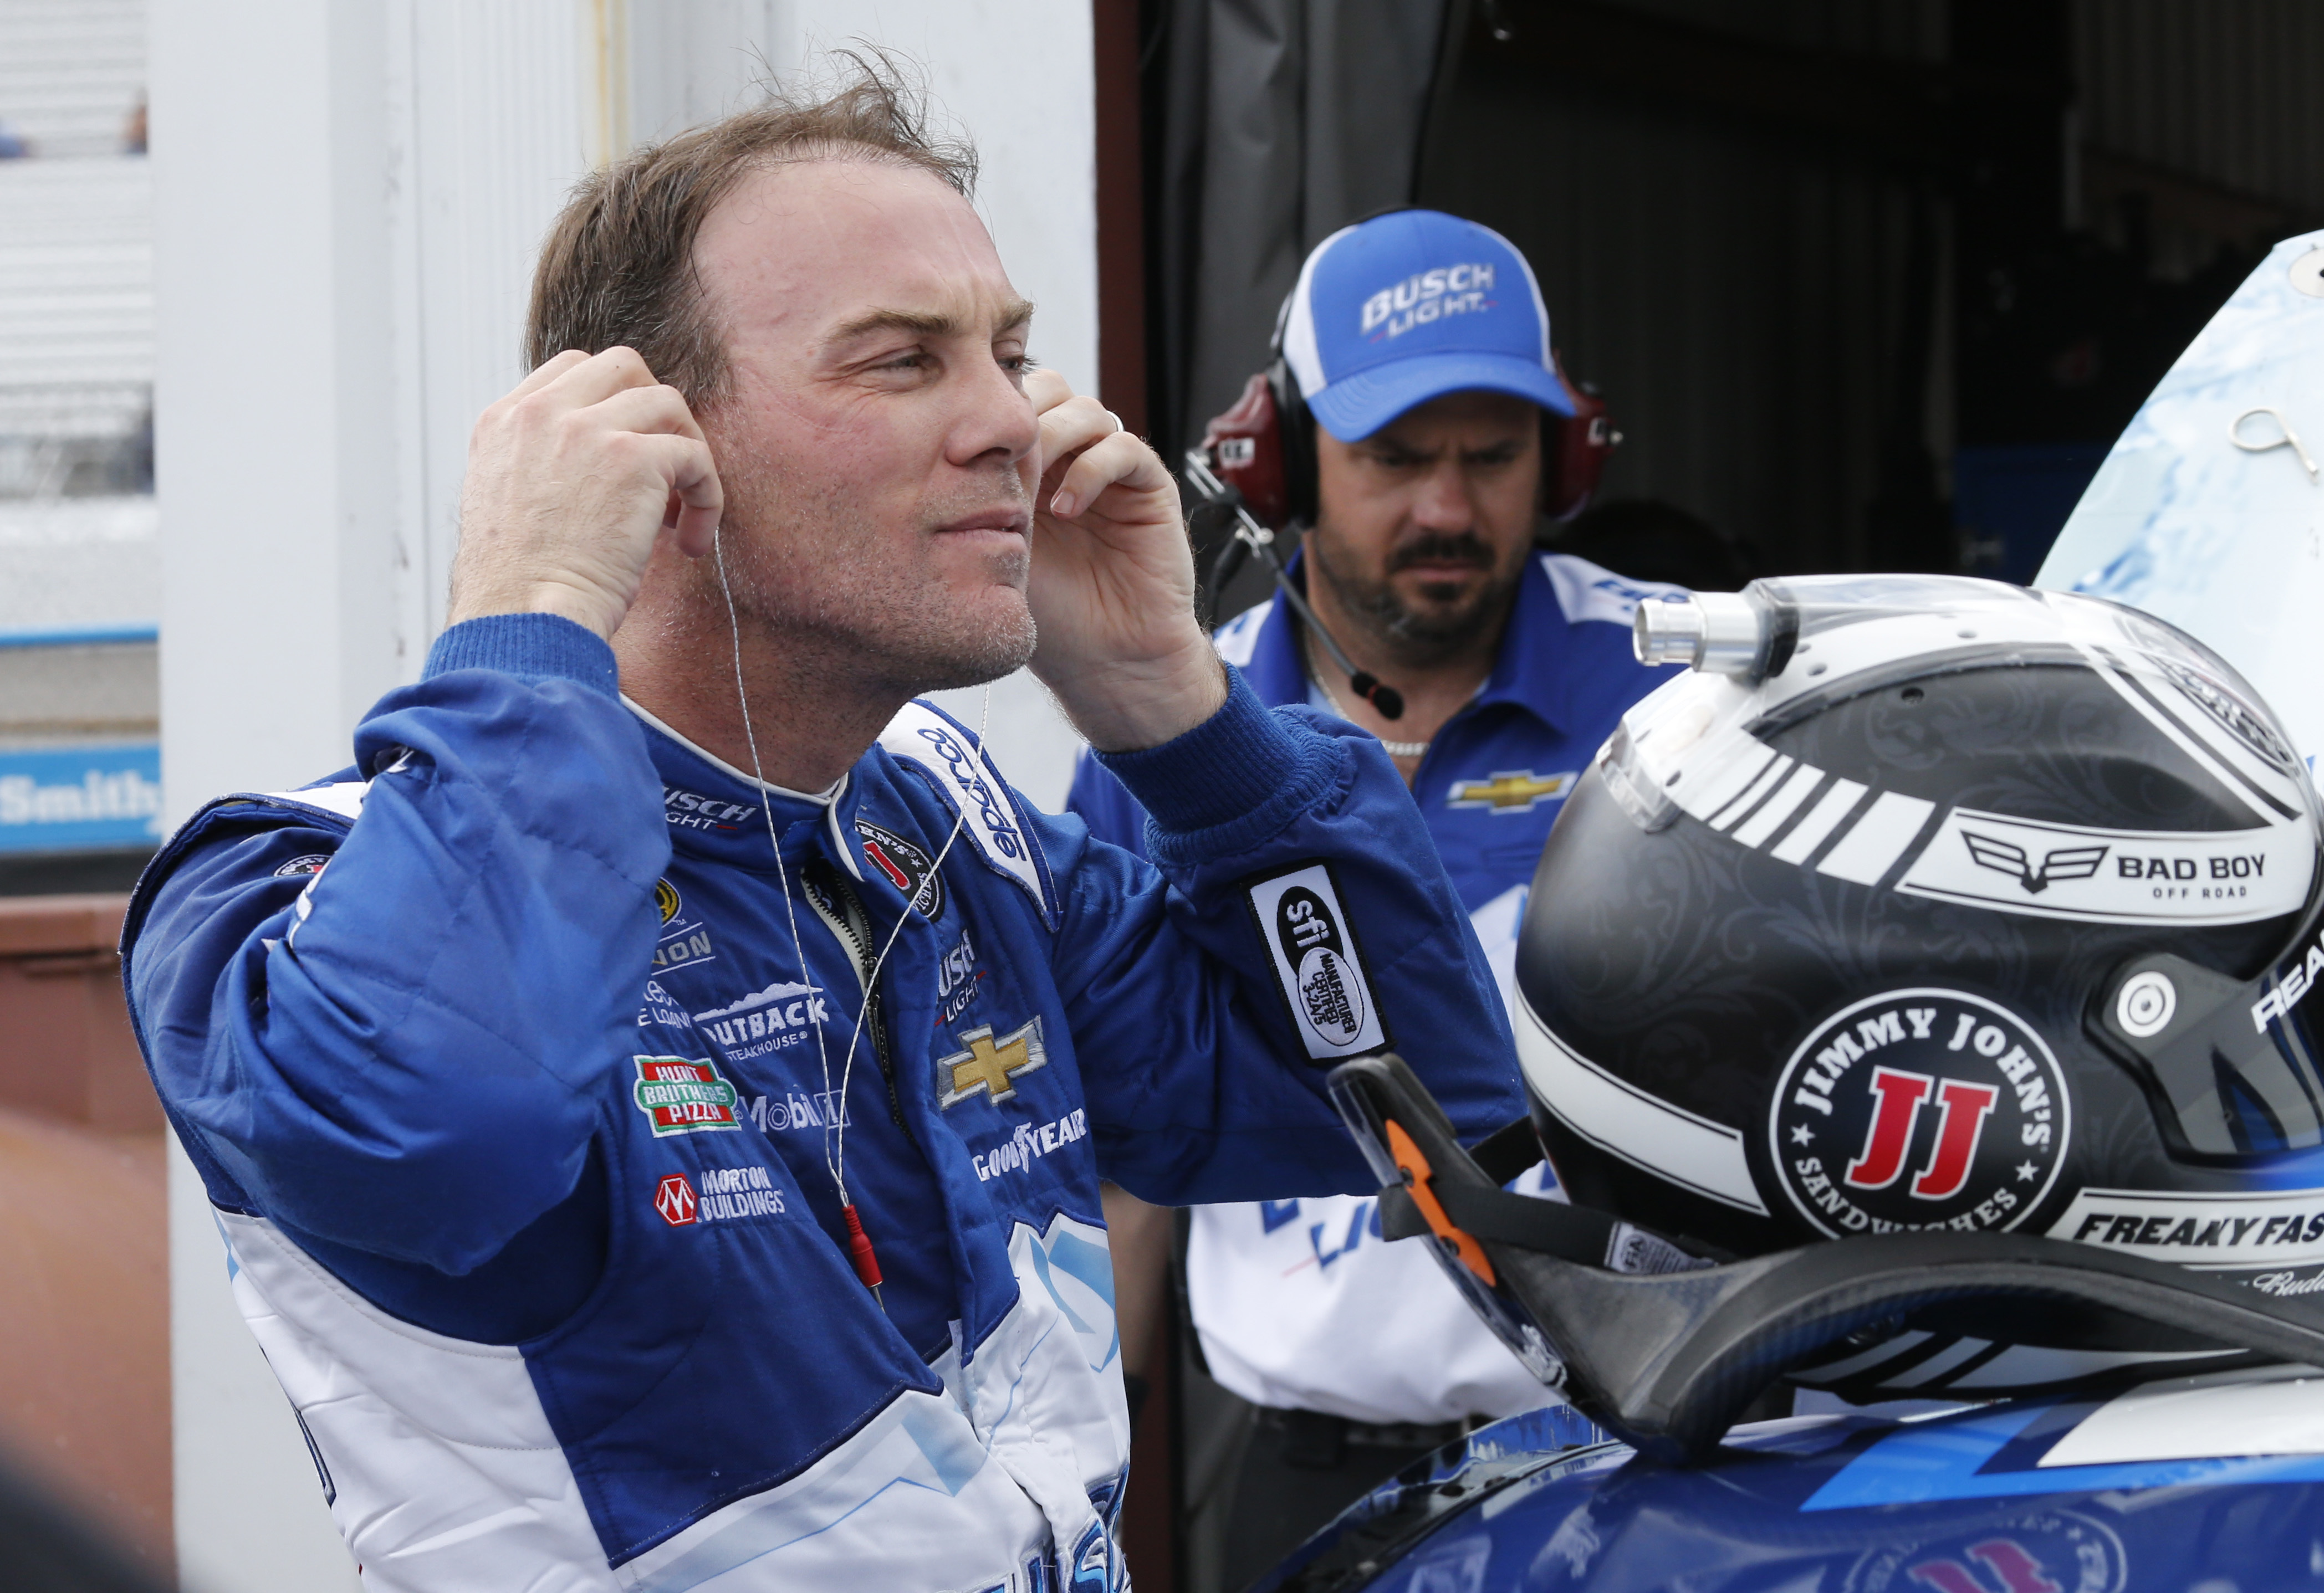 Kevin Harvick takes his earplugs out as he arrives in the garage after practice for Sunday's NASCAR Sprint Cup auto race at Richmond International Raceway in Richmond, Va., Saturday, April 23, 2016. Harvick has the pole for Sunday's race. (AP Photo/Steve